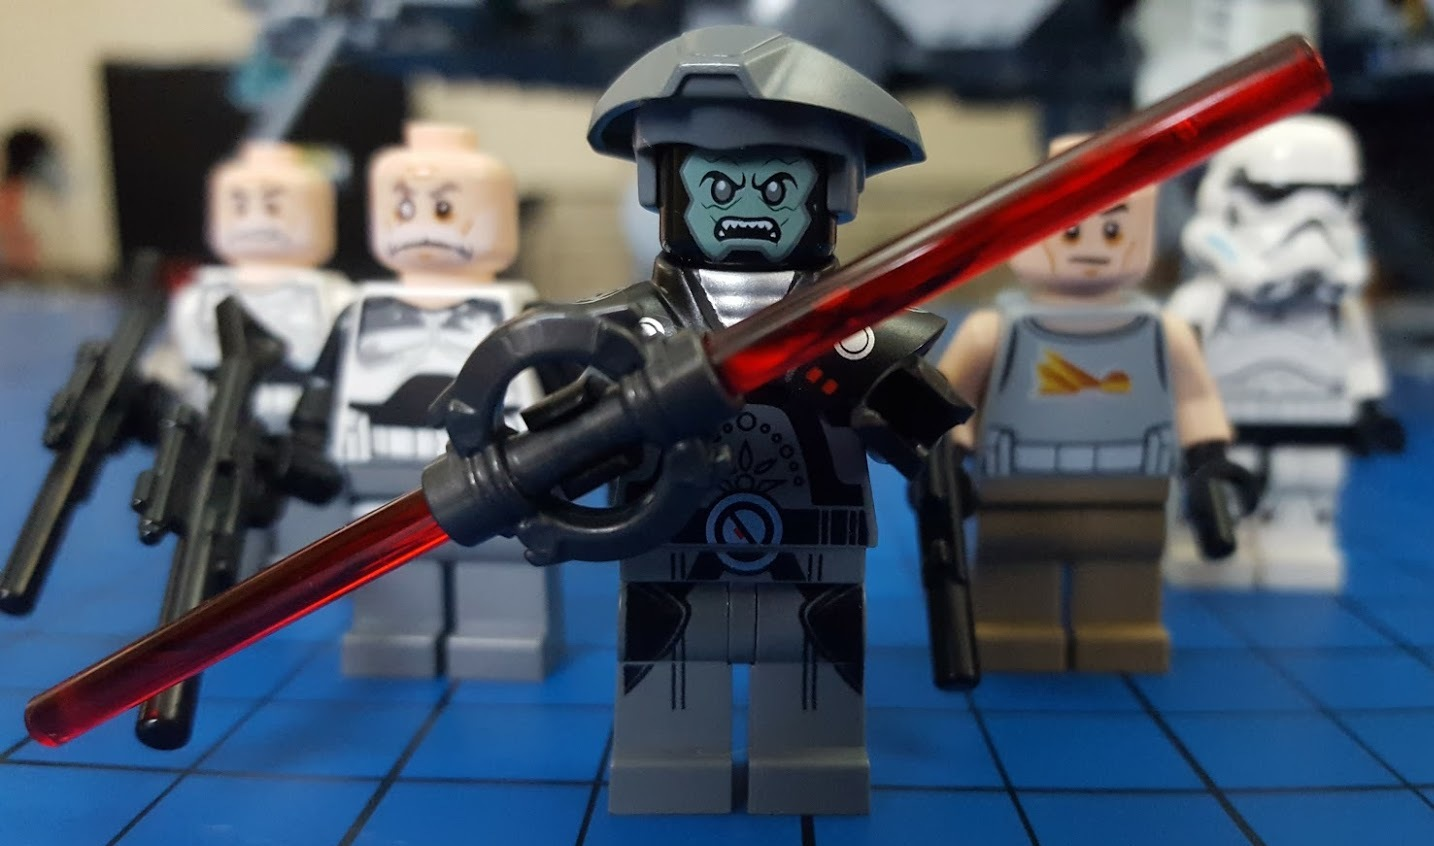 Lego 75157 Star Wars Captain Rexamp039s At Te Reviewed Juragansynopsis There Are 5 Minifigures In This Set Which Is Based On Characters And The Brick Castle Rexs Review